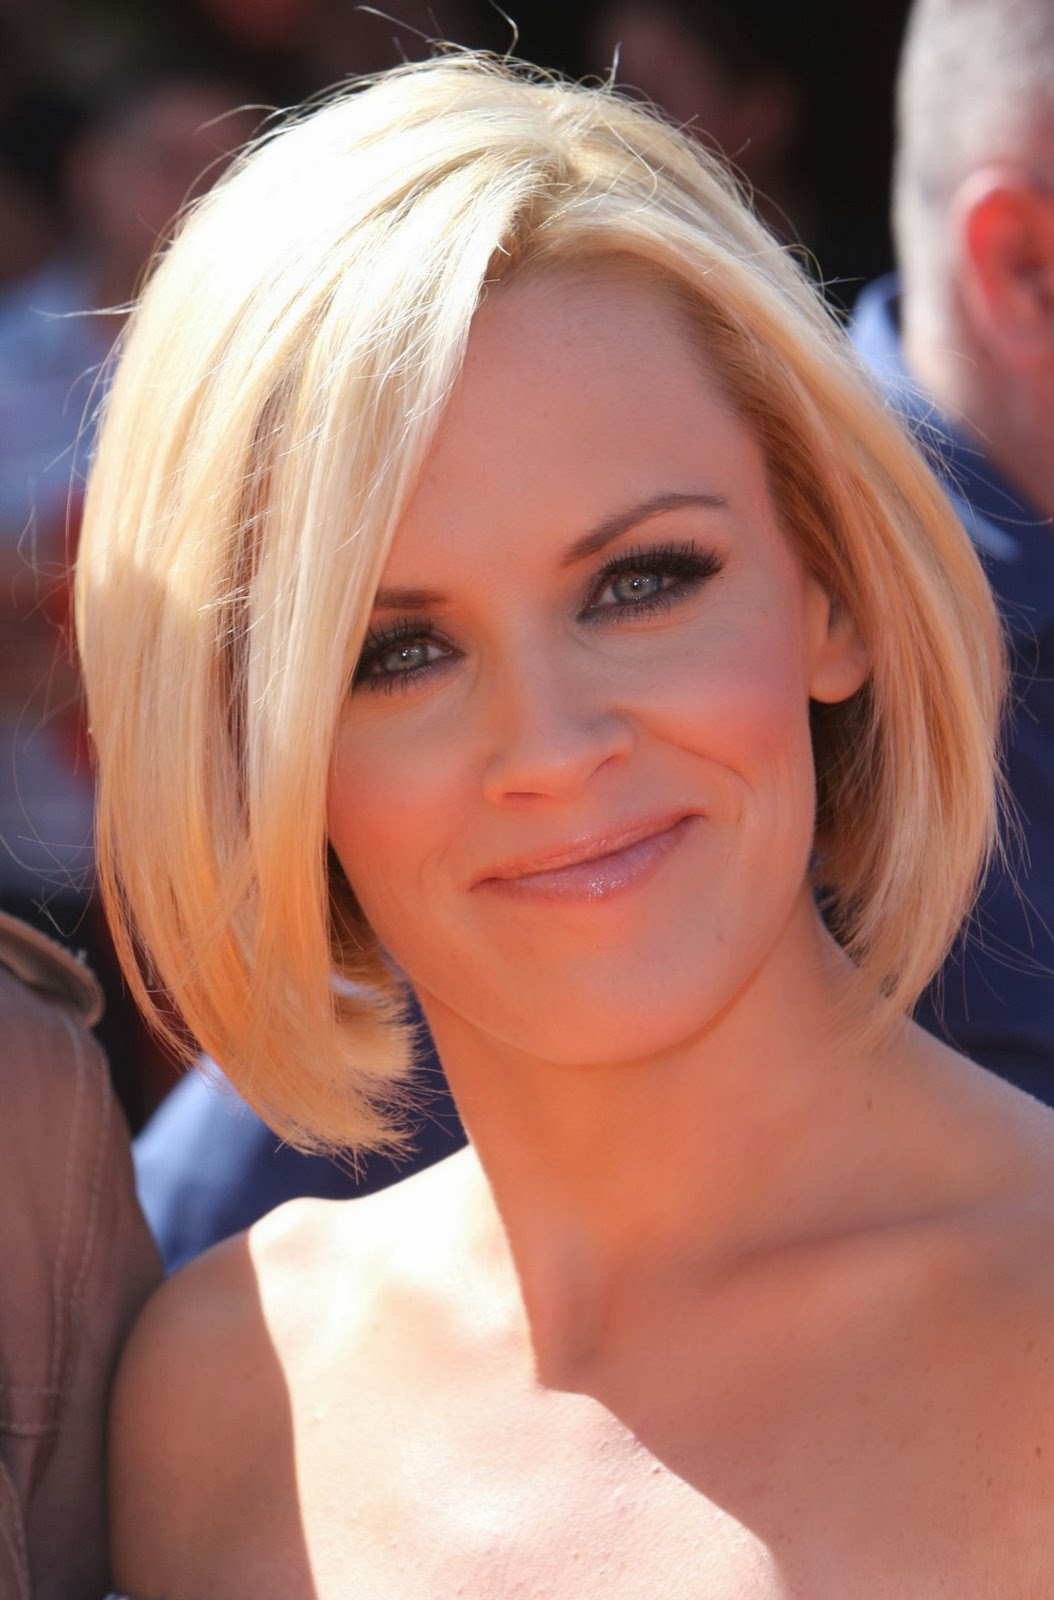 Best ideas about Bob Style Haircuts . Save or Pin The Most Popular Bob Hairstyles 2014 Now.